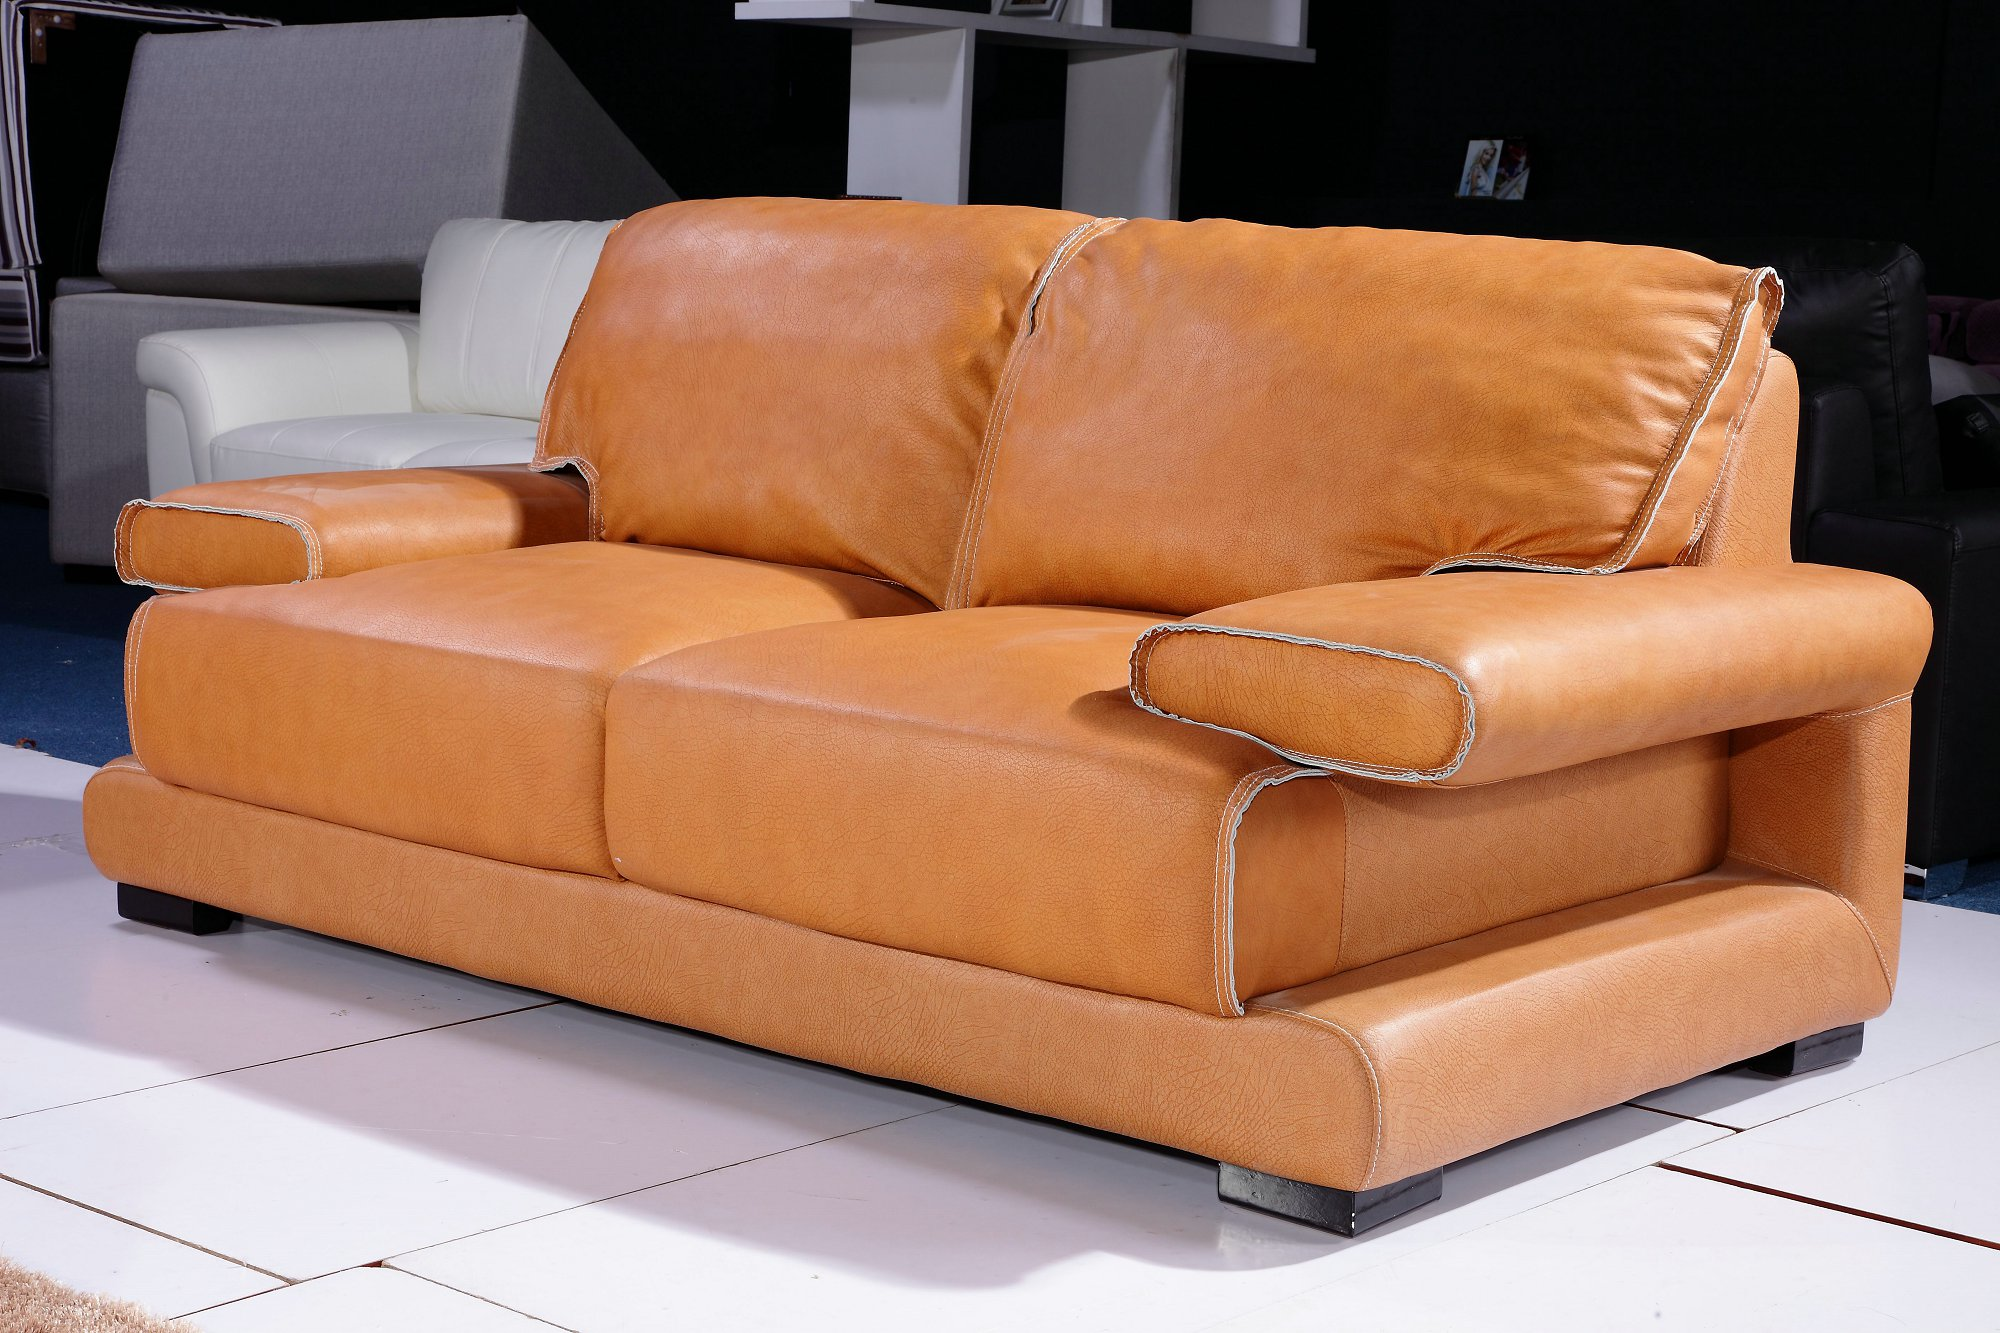 Orange Leather Chair Orange Leather Couch Furniture Homesfeed